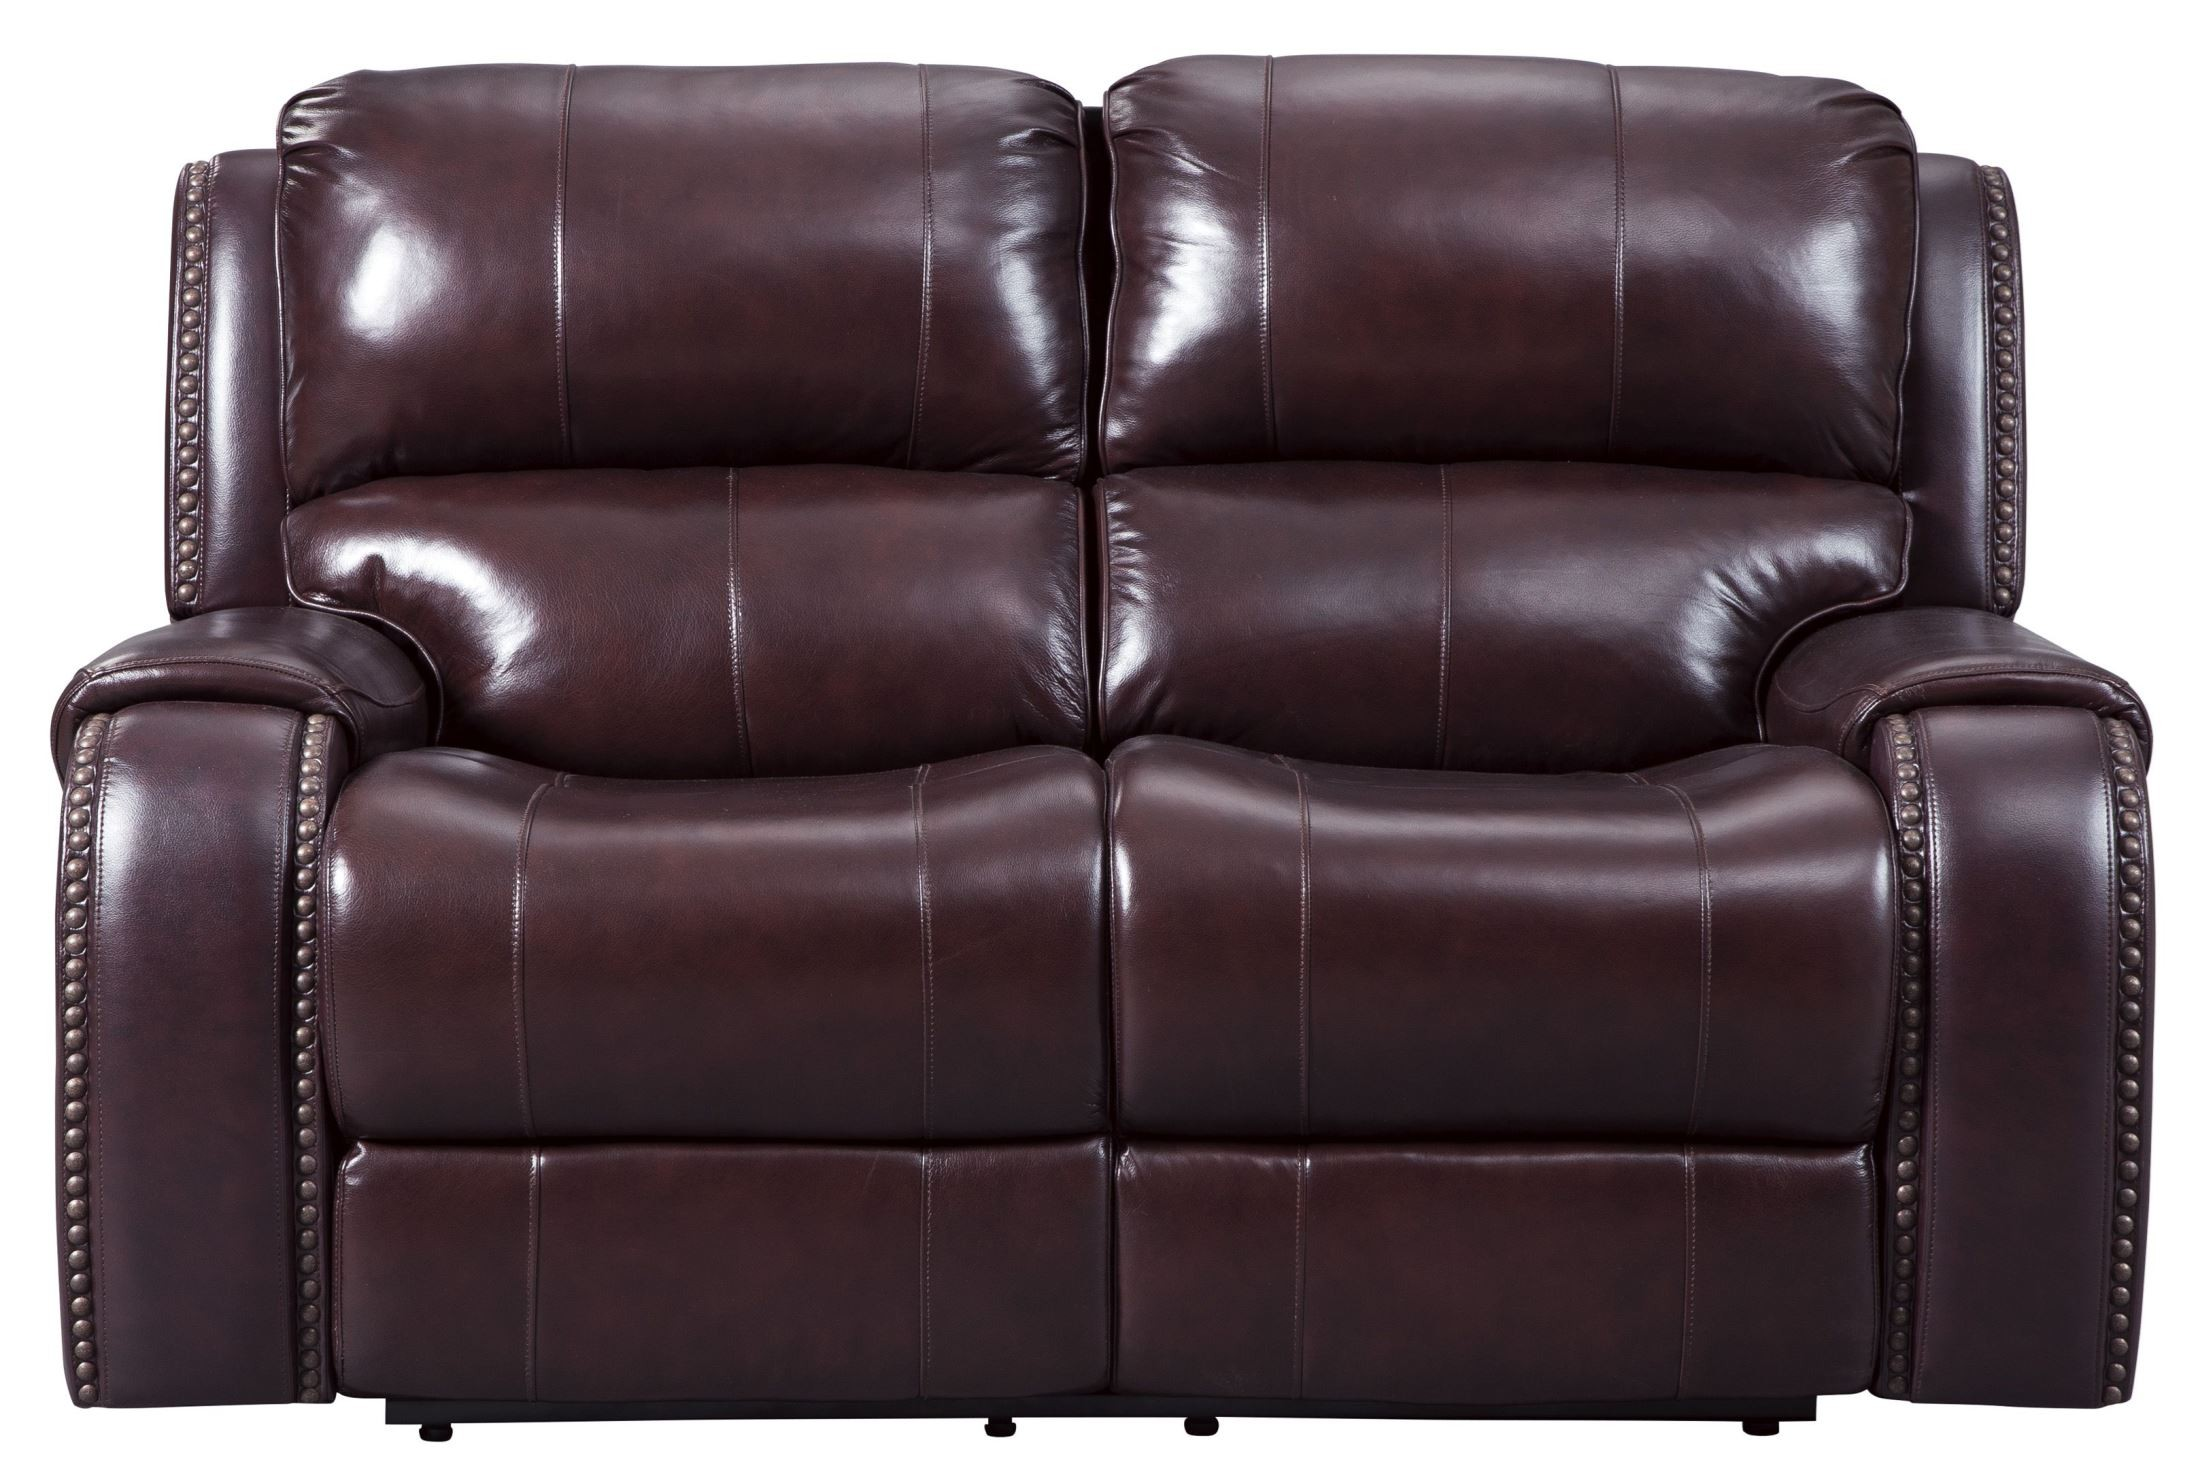 Gilmanton Burgundy Power Reclining Loveseat With